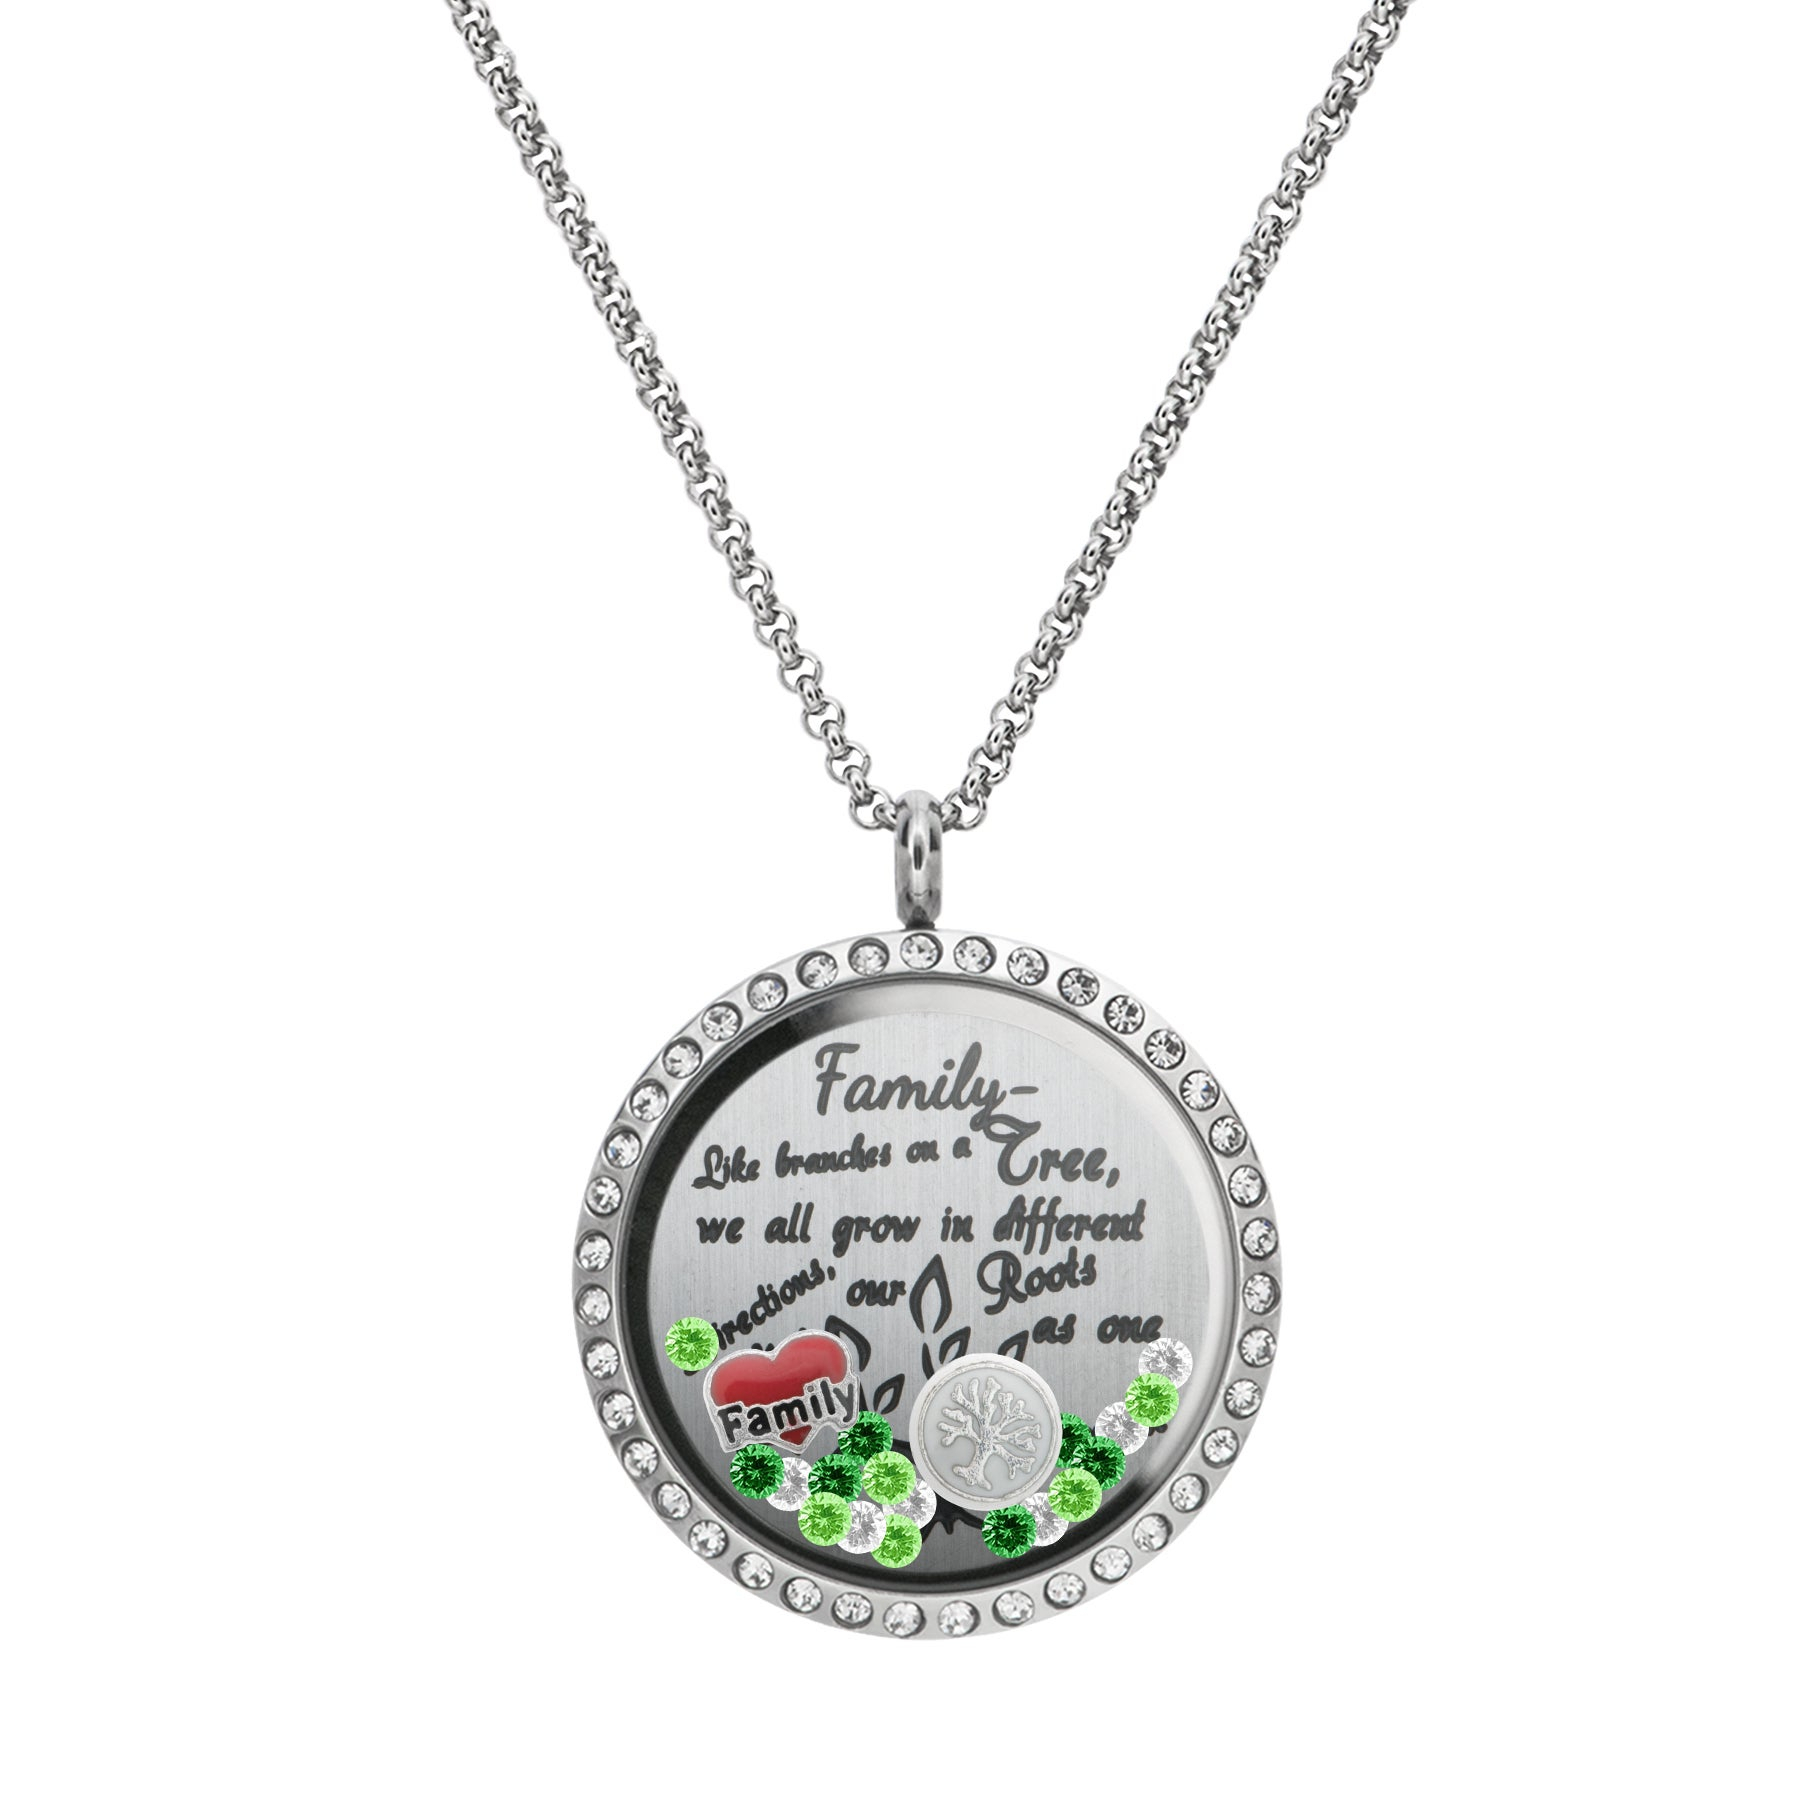 Queenberry Family Tree Love Heart Round Floating Locket Crystals Charm Necklace Pendant With Regard To Latest Love & Family Petite Locket Charms Necklaces (View 12 of 25)